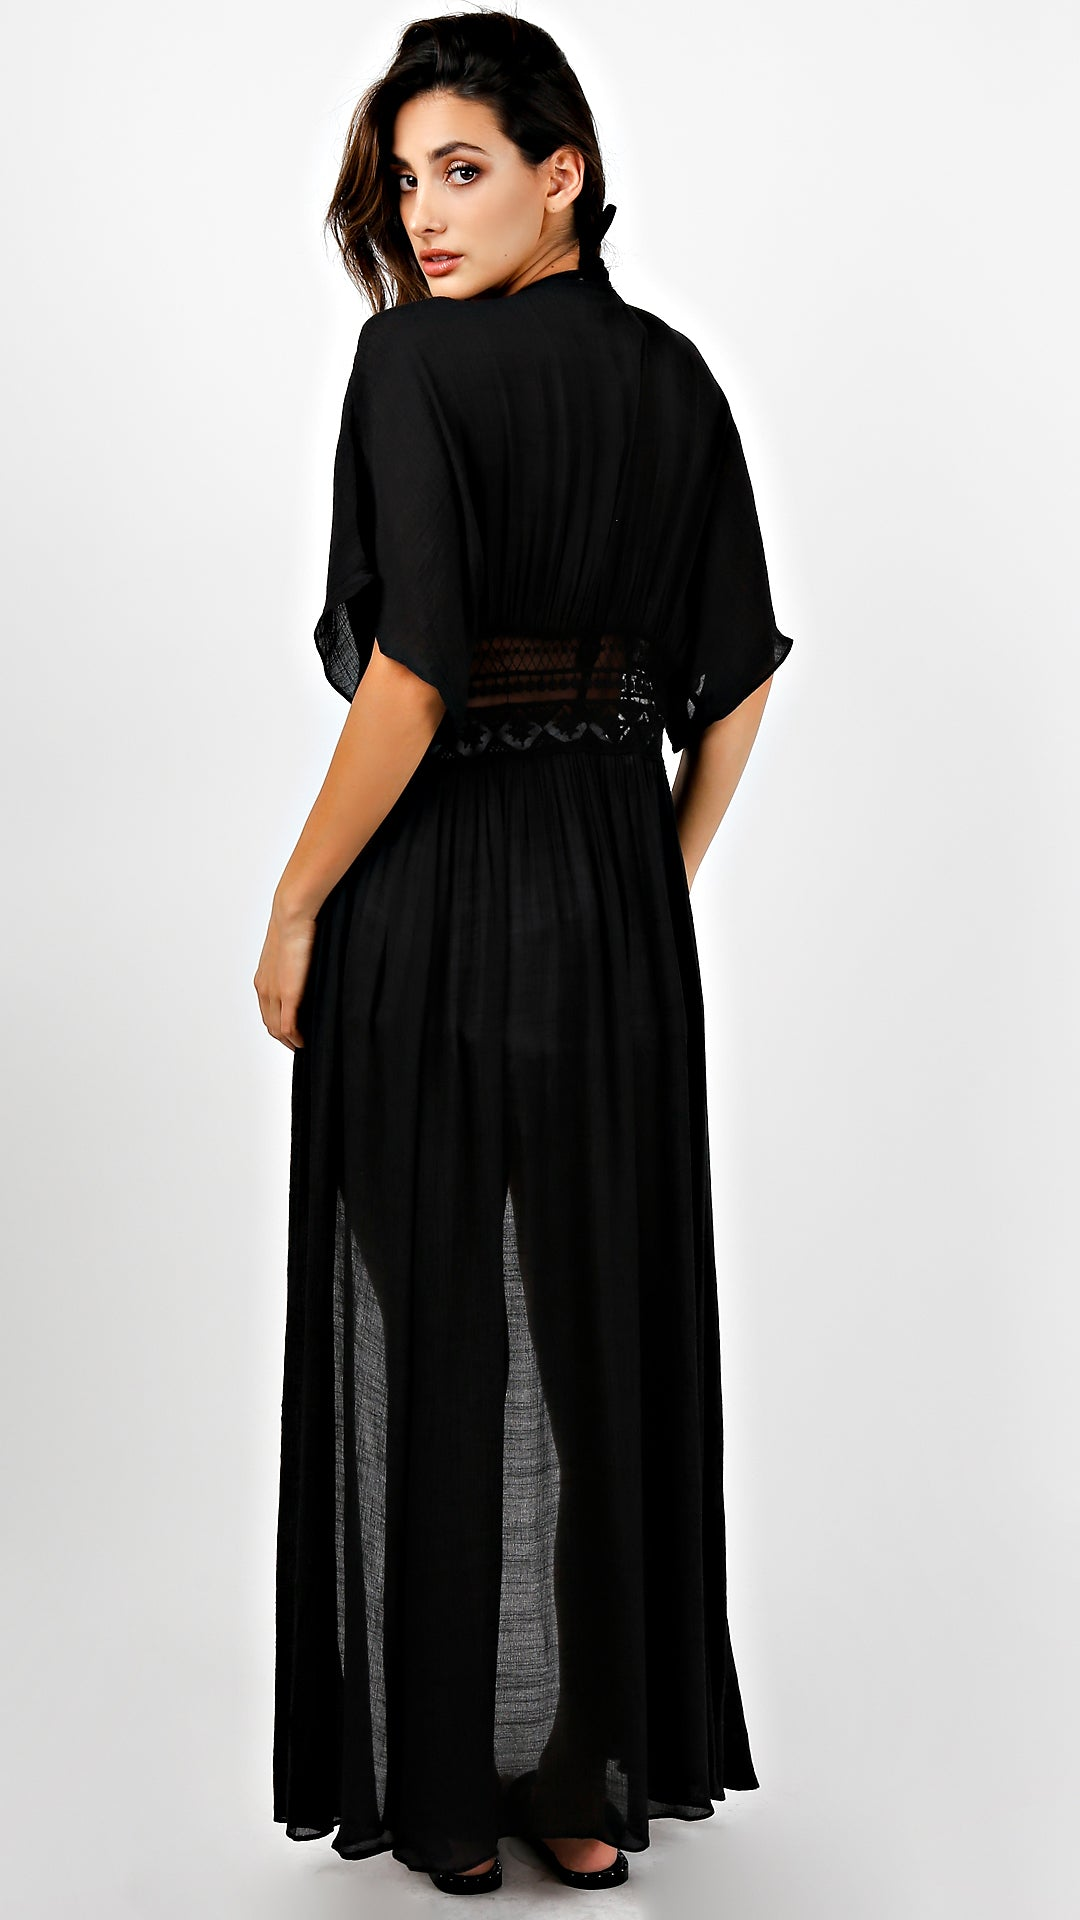 Crochet Detailed Cover Up Maxi Dress Coat